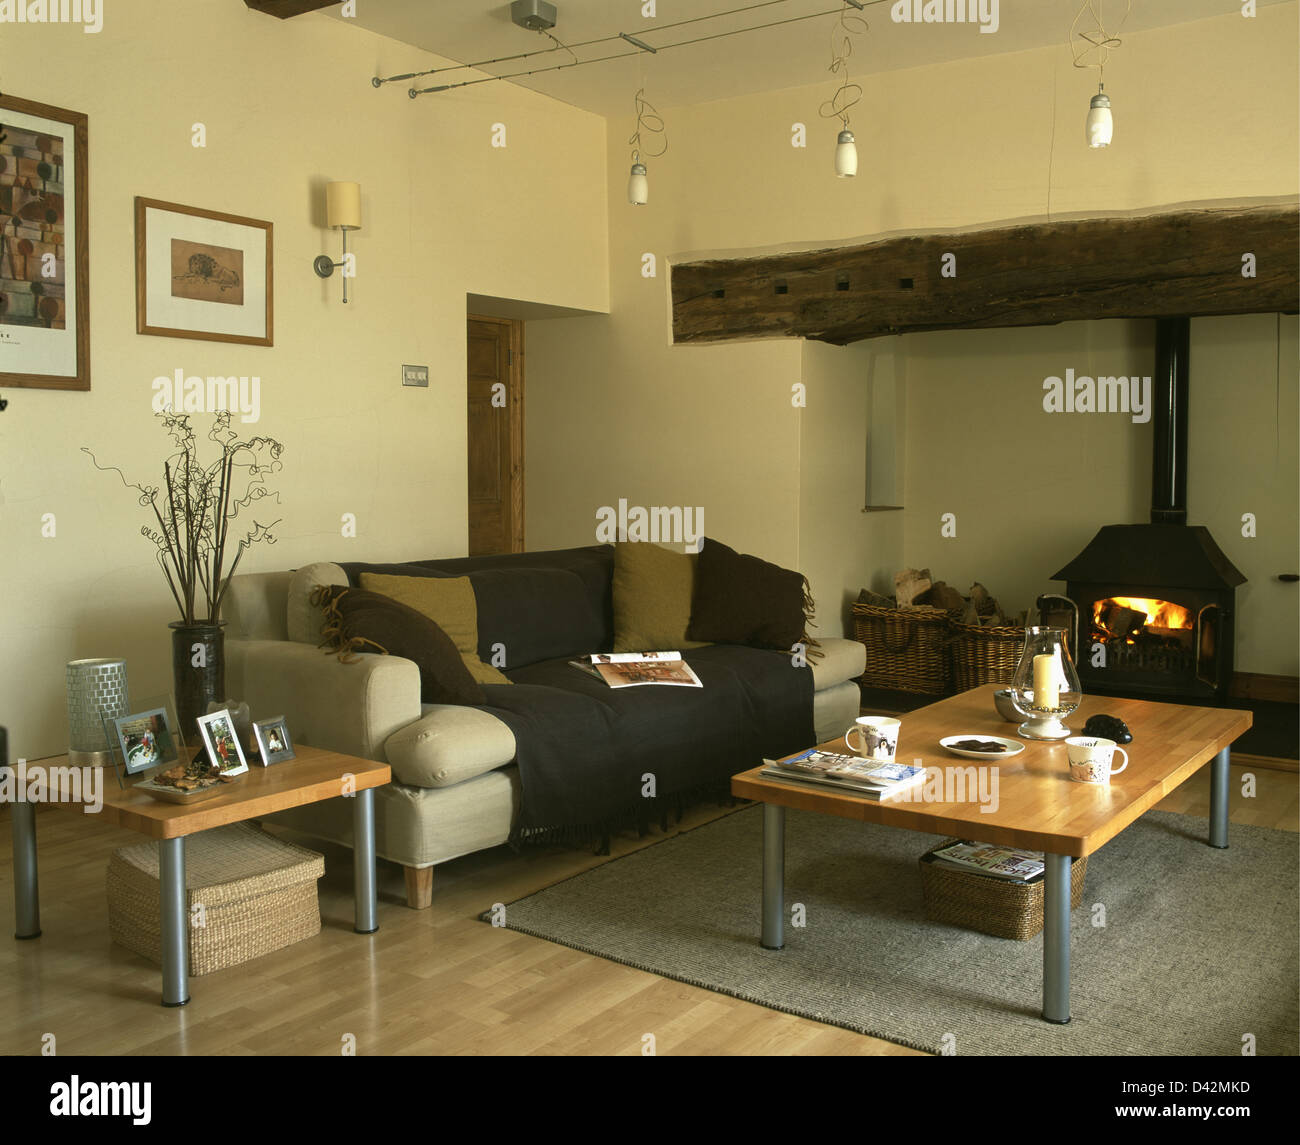 Coffee Table And Beige Sofa With Brown Throw In Beige